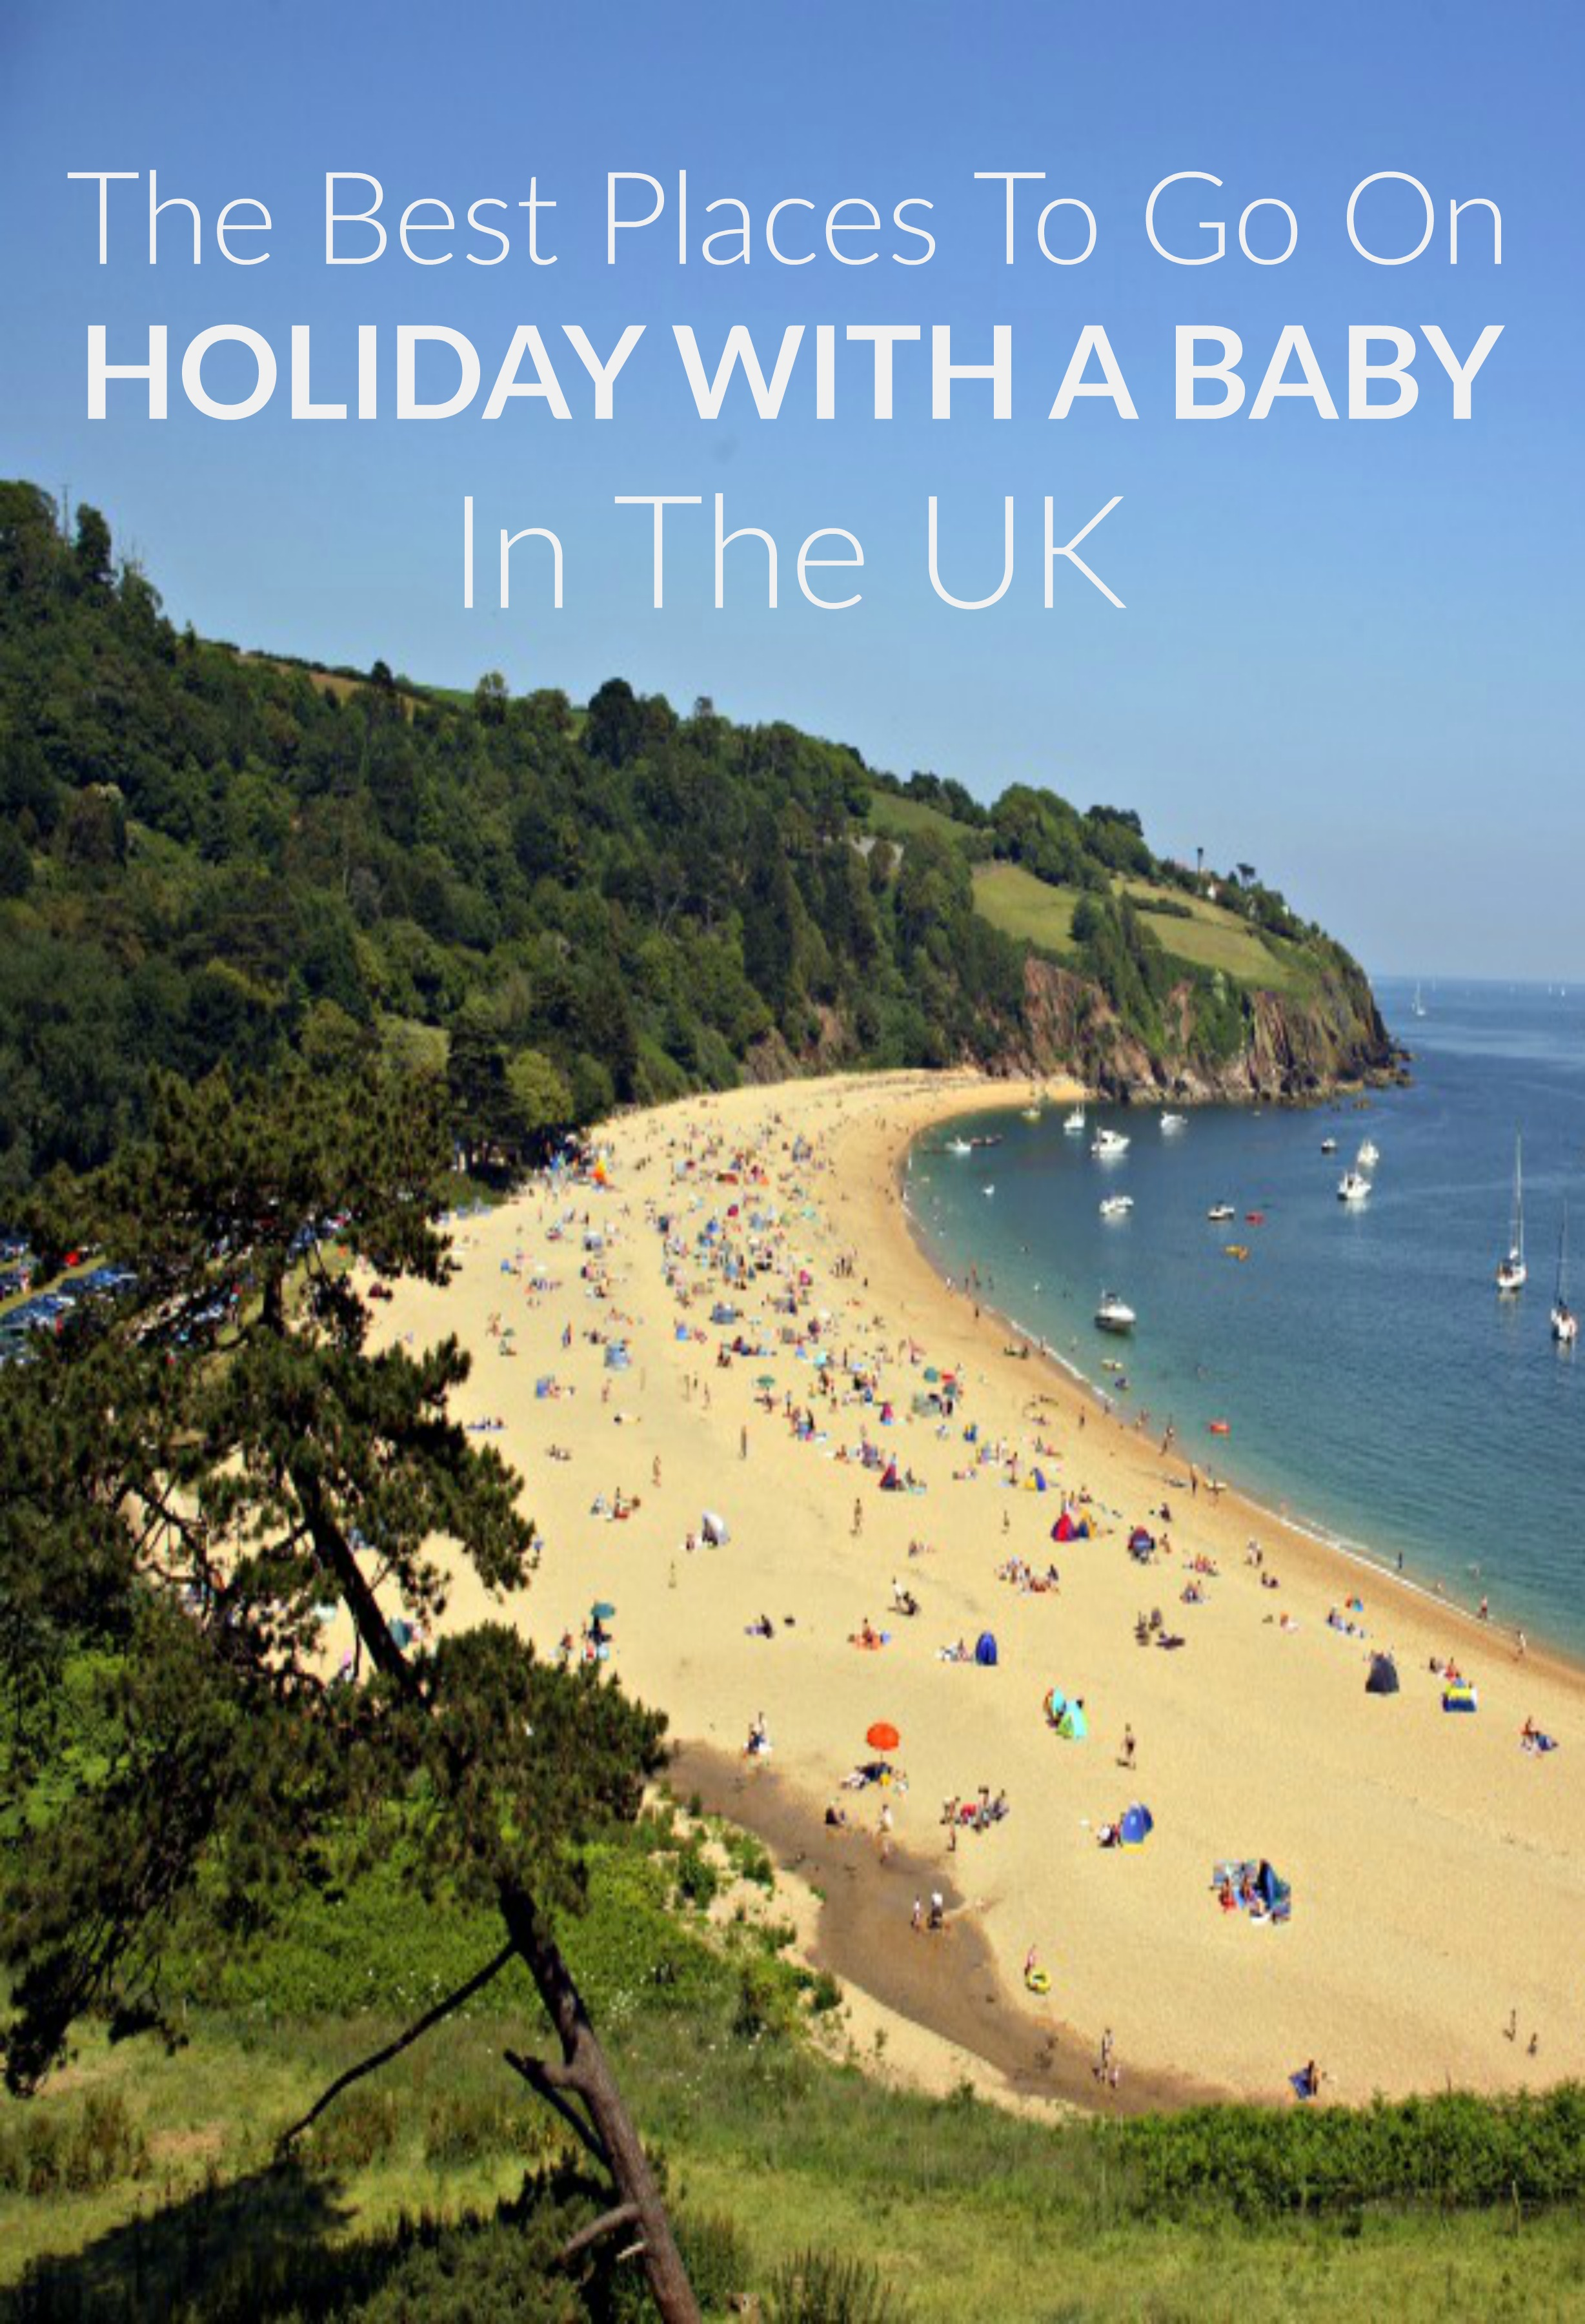 the best places to go on holiday with a baby in the uk